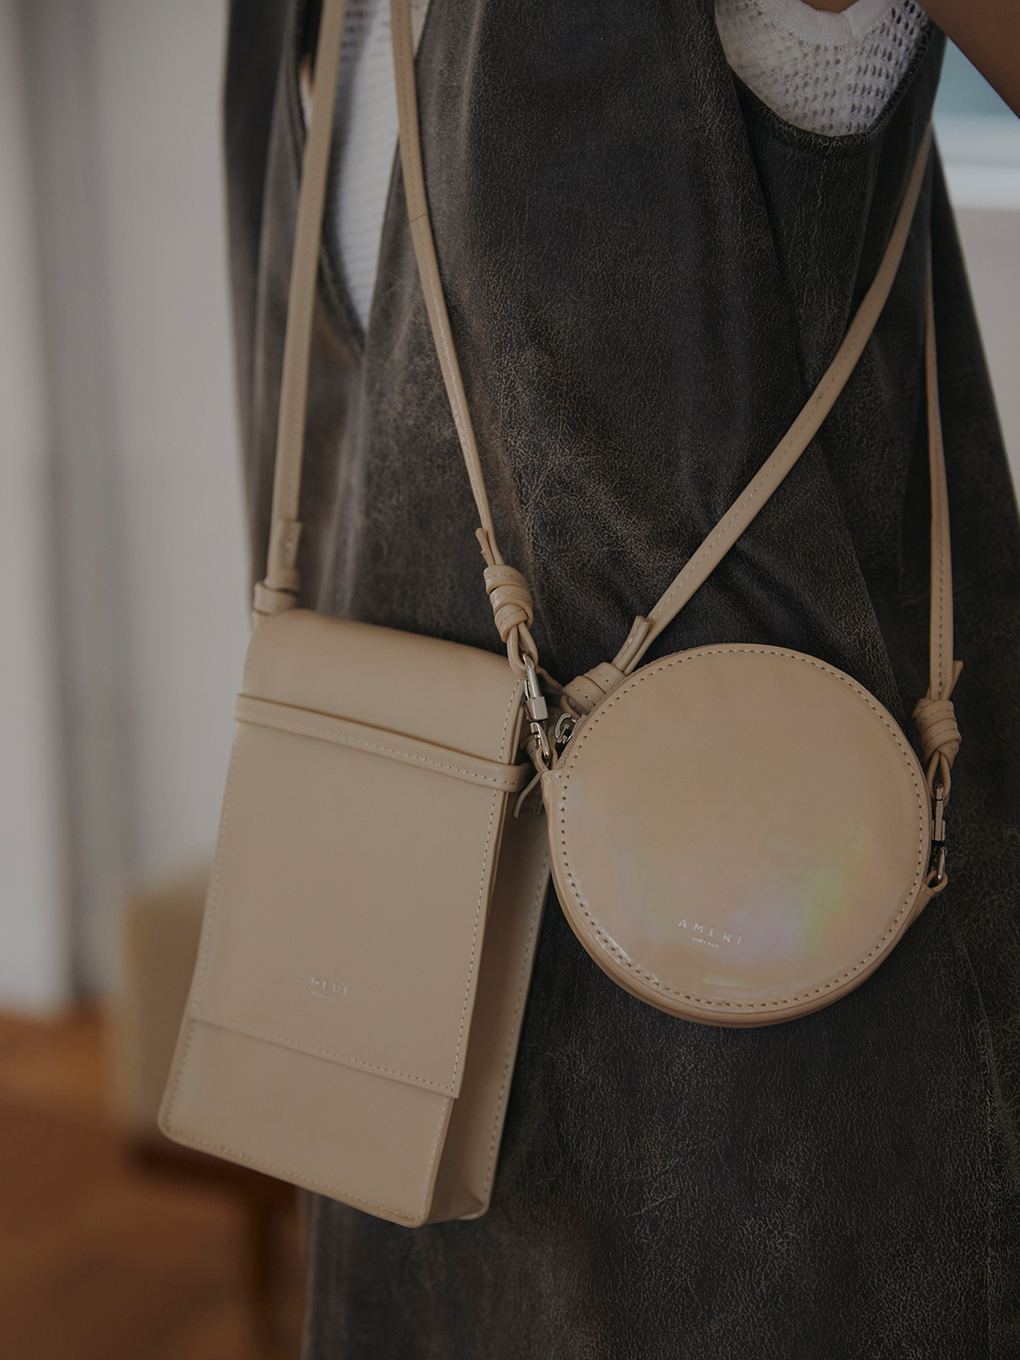 SQUARE AND CIRCLE BAGS